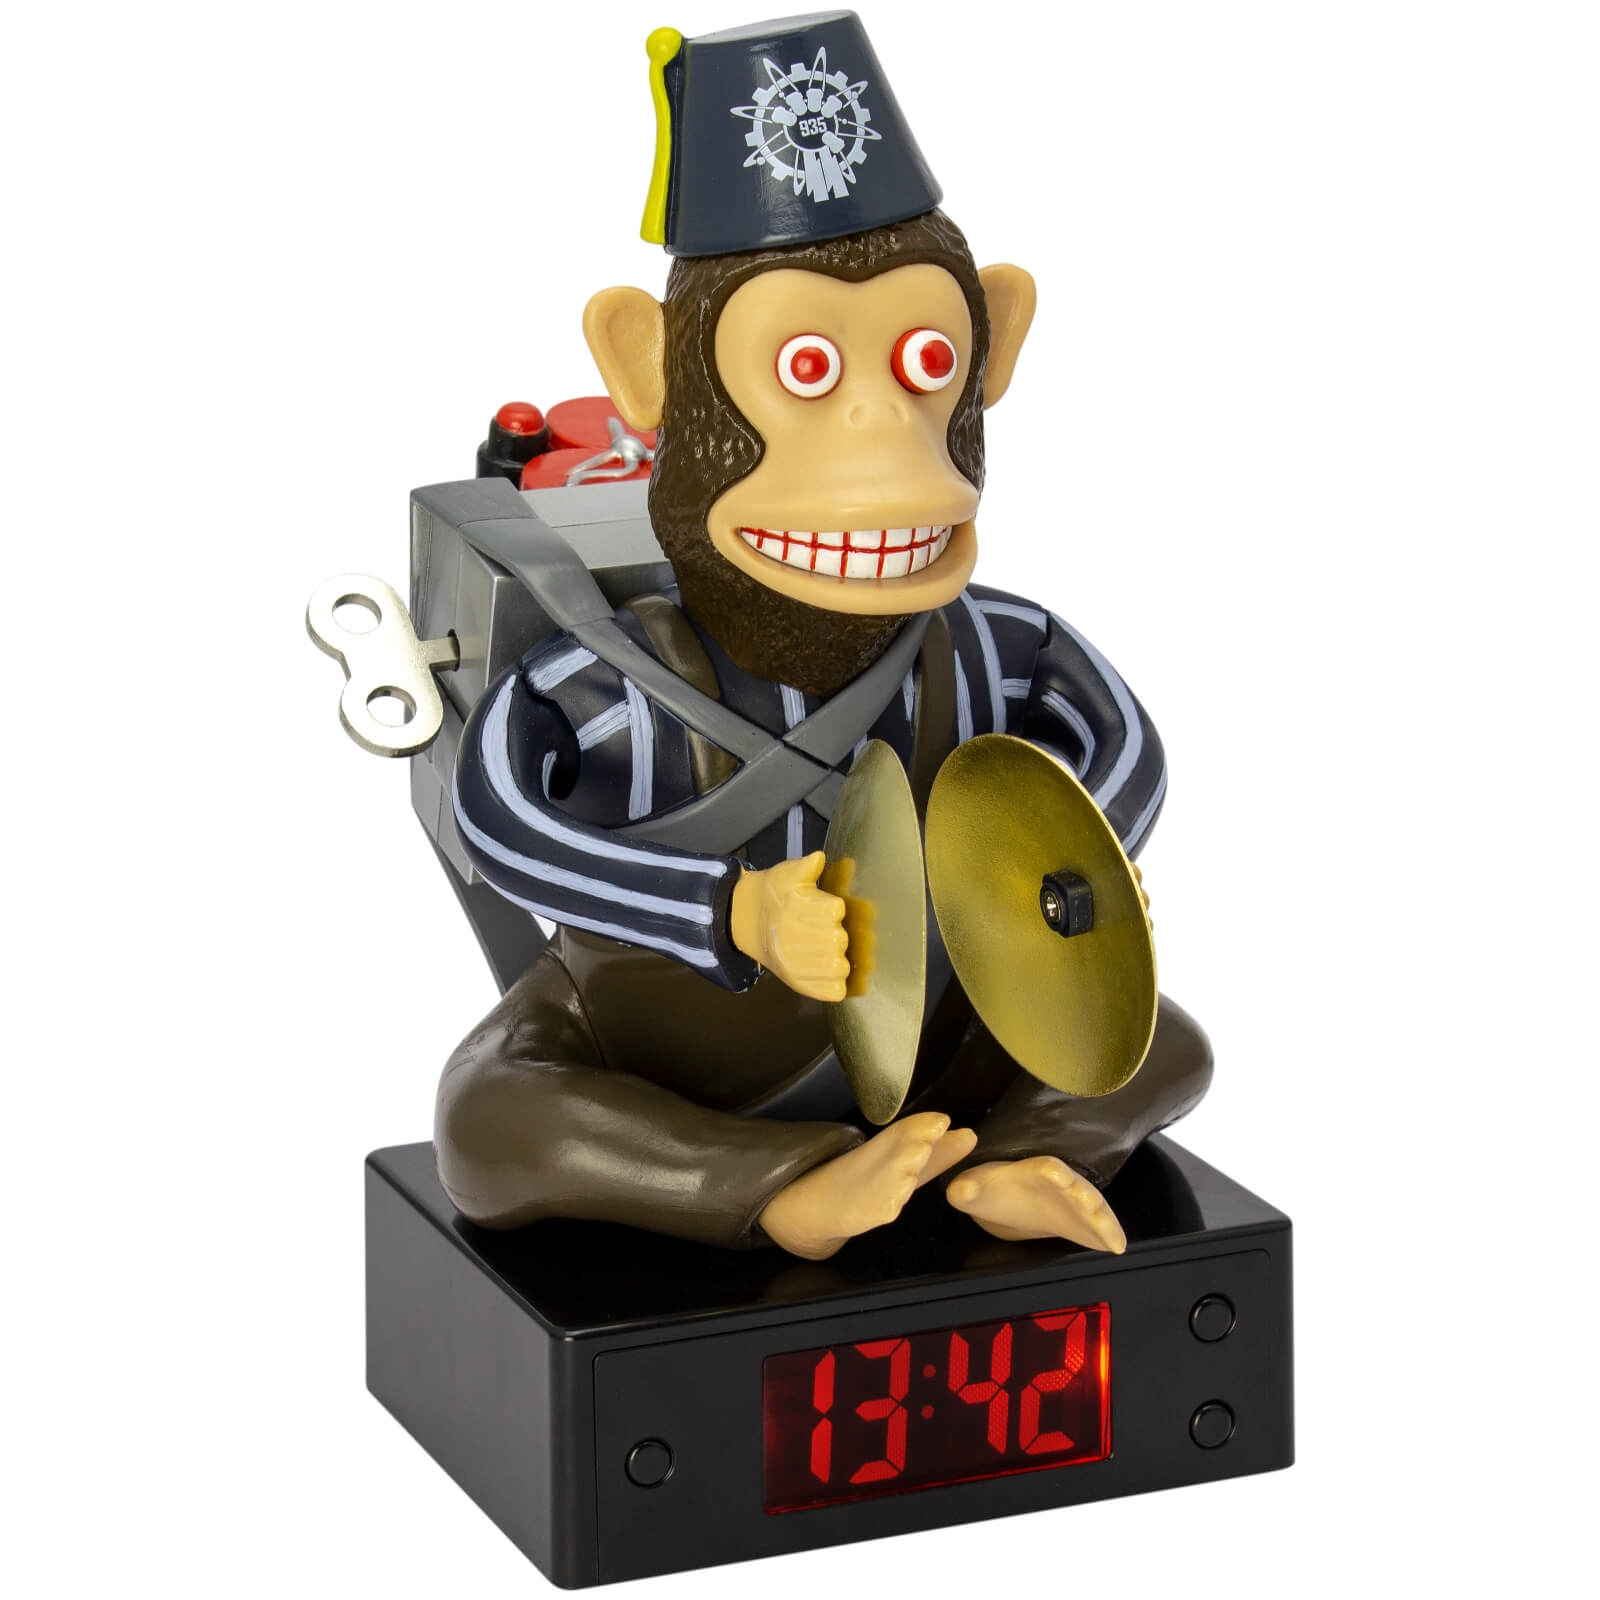 Monkey Bomb Alarm Clock